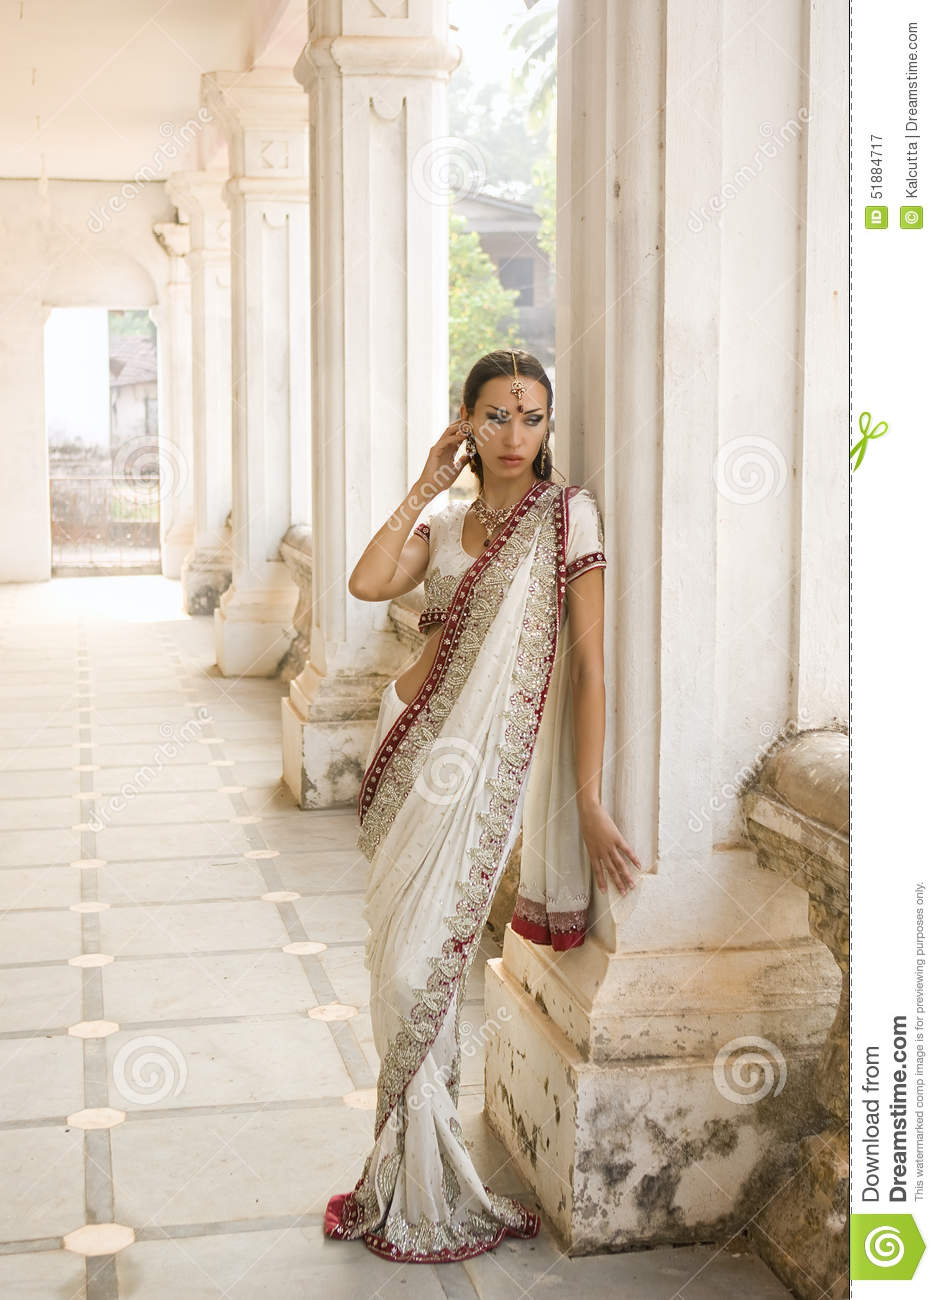 c7046f6f96 Beautiful young indian woman in traditional clothing with bridal makeup and oriental  jewelry. Beautiful Girl bollywood dancer in Sari posing outdoor near ...